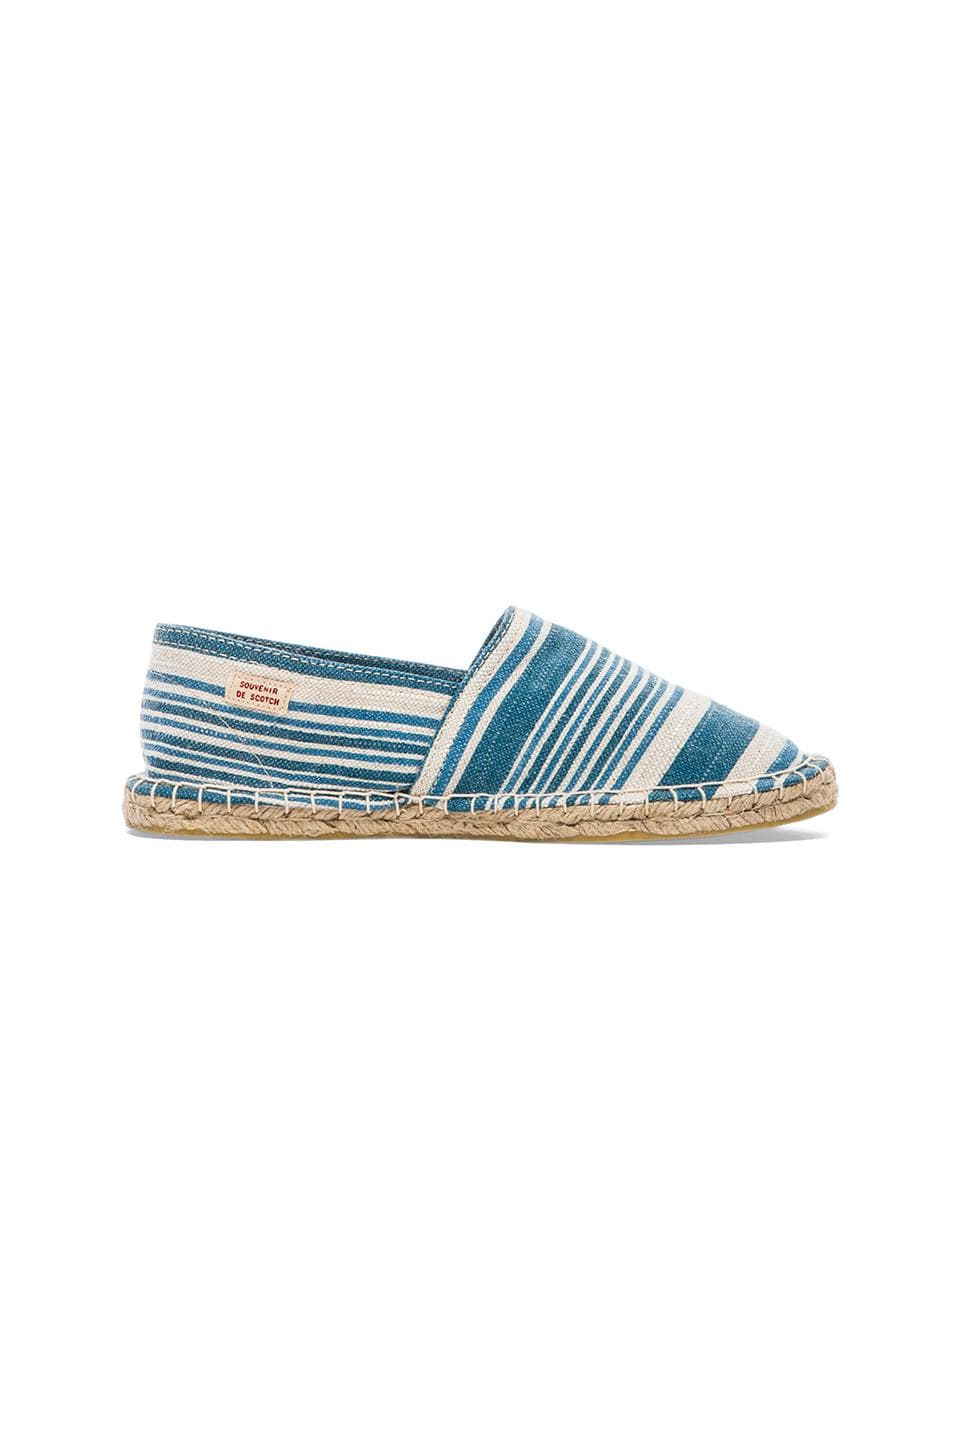 Scotch & Soda Canvas Espadrilles in Blue & White